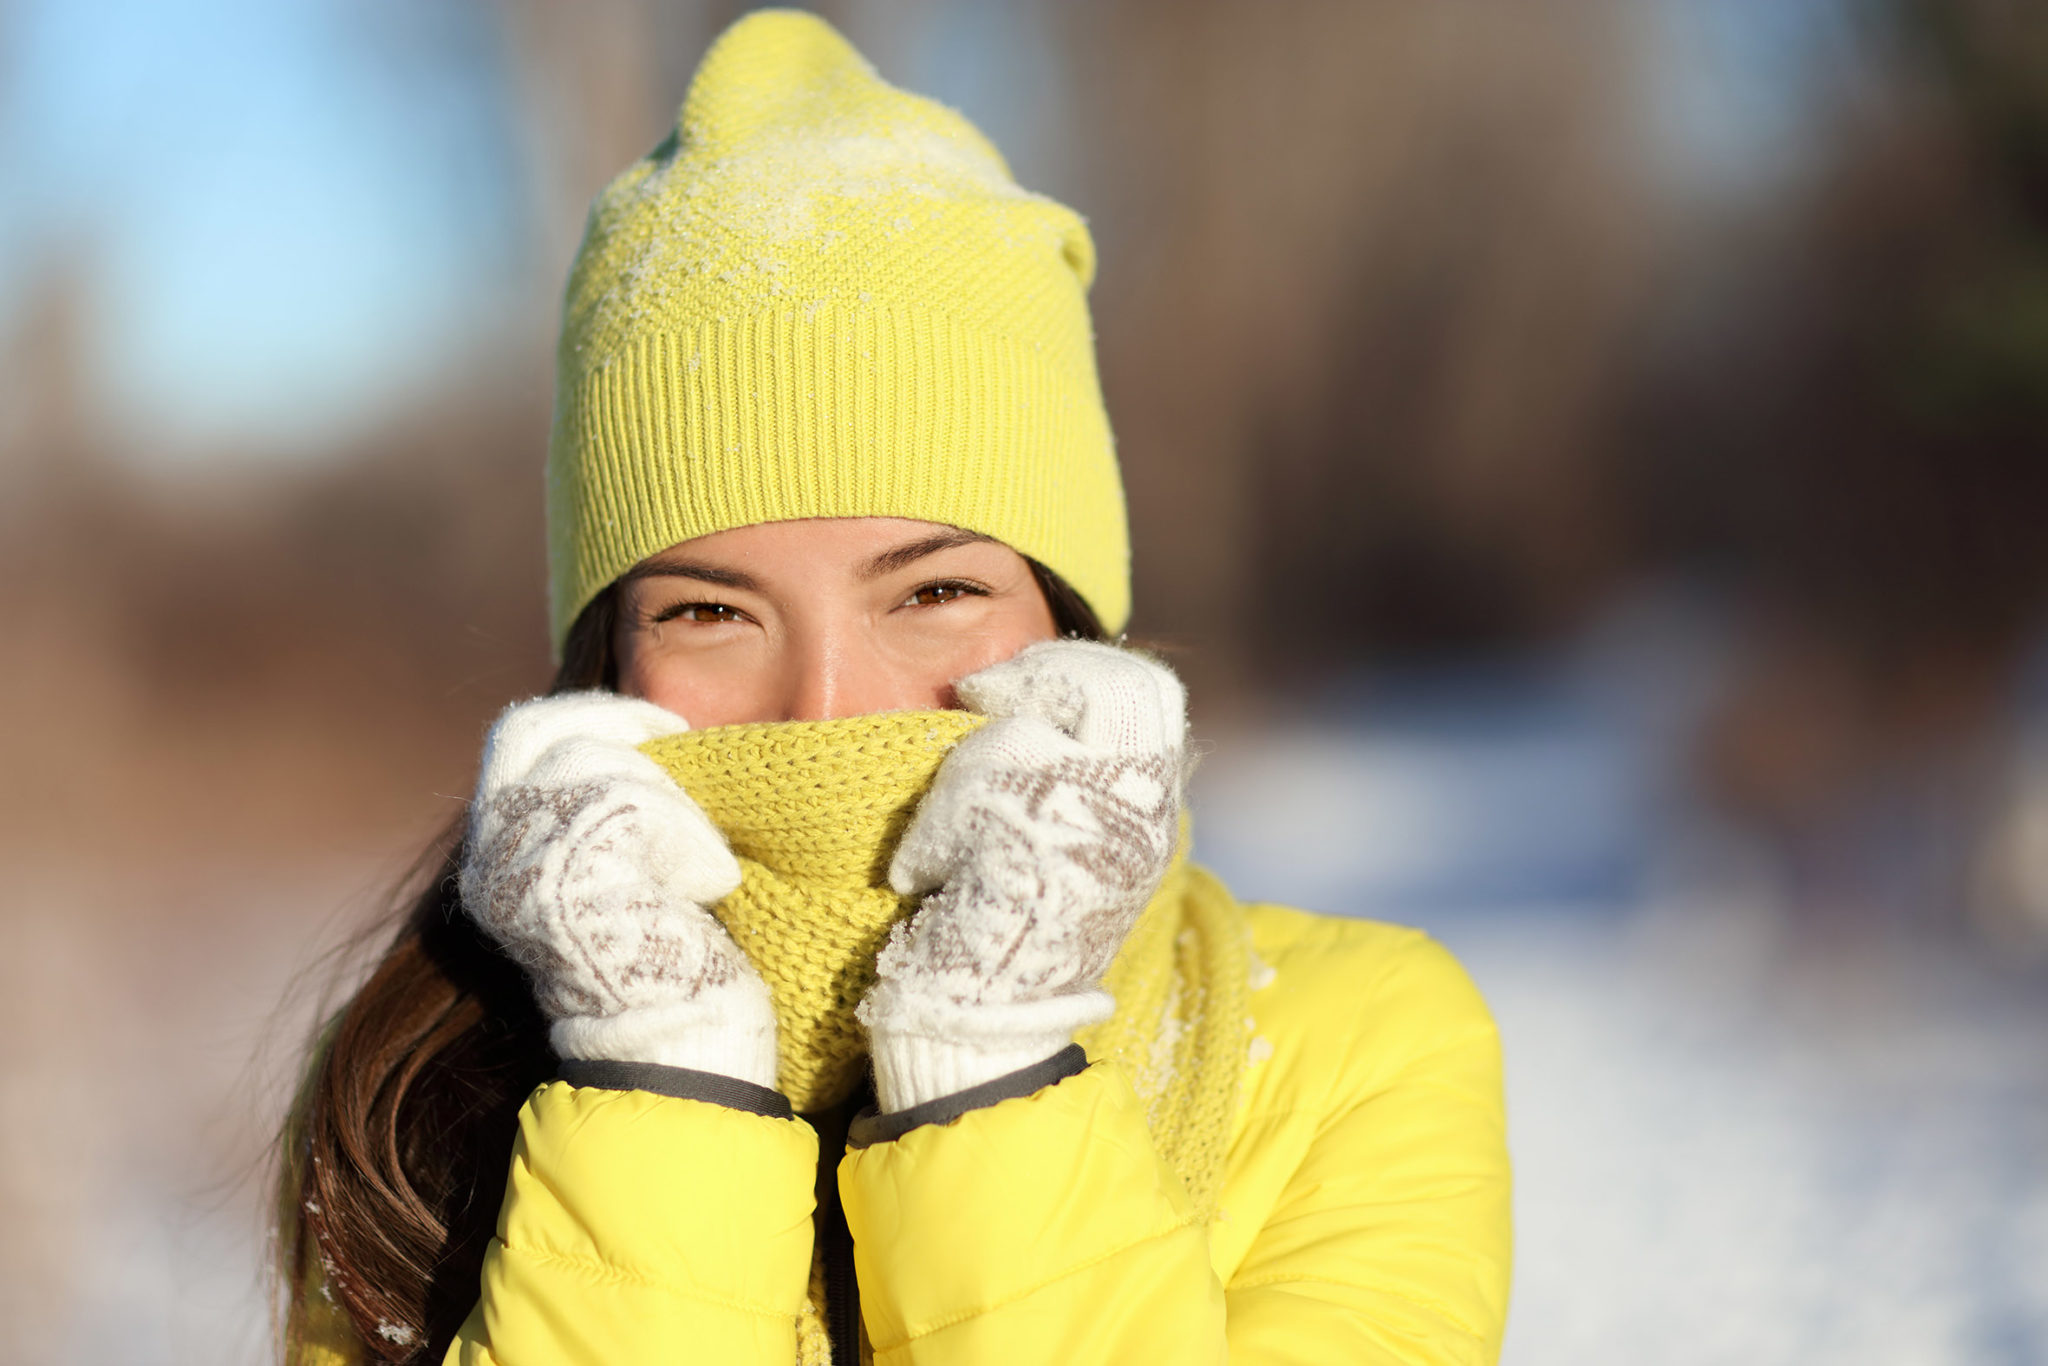 How to Control Asthma in Cold Weather